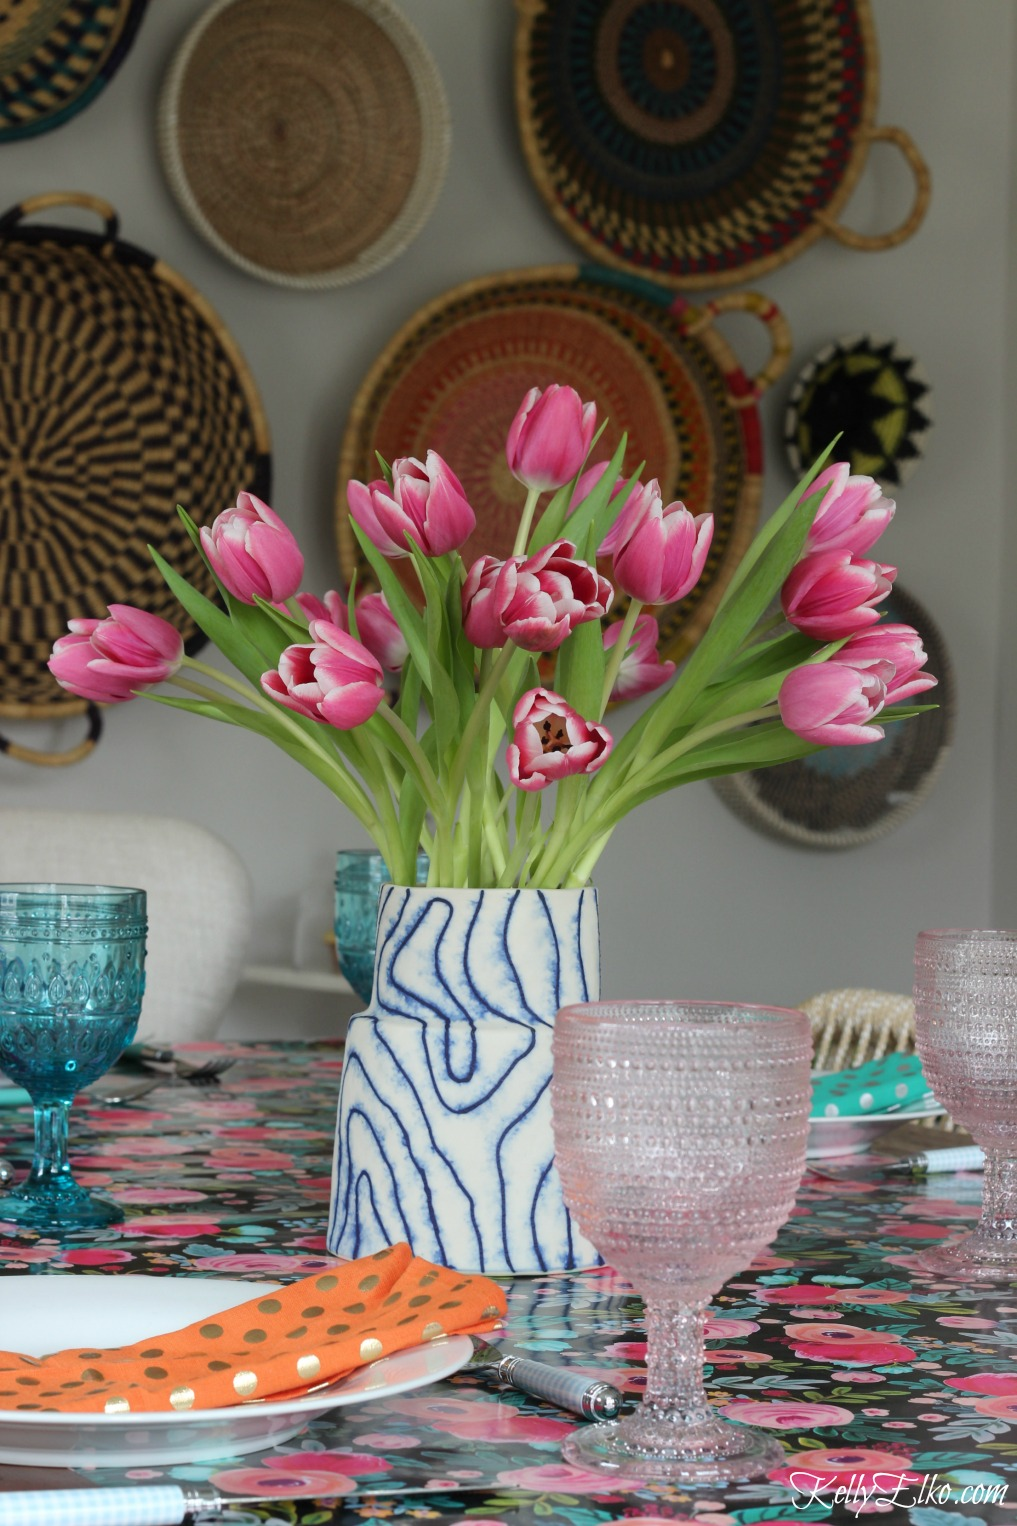 Spring table - love the blue and pink glasses and tulip centerpiece kellyelko.com